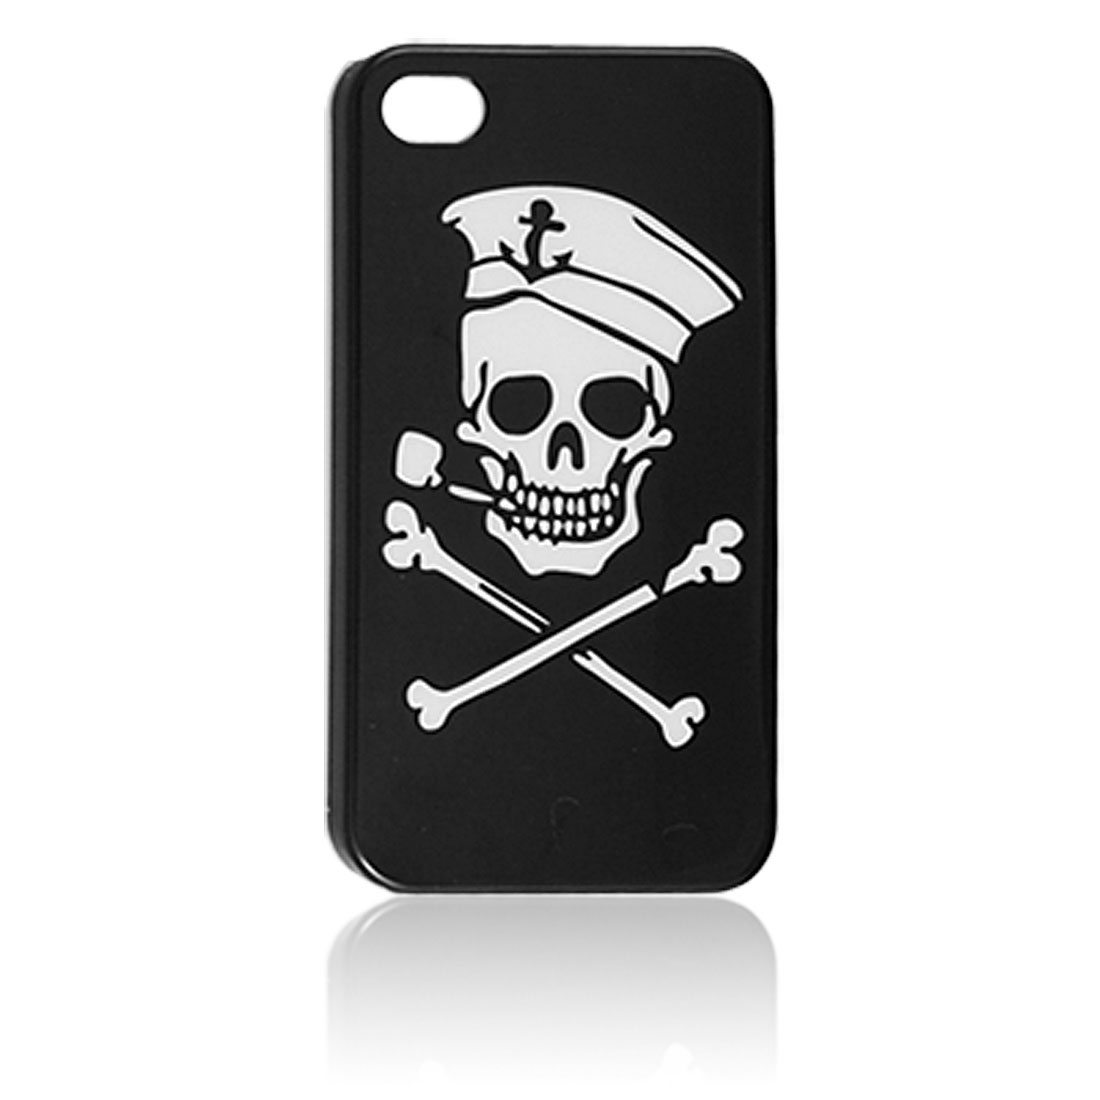 White Skull Pattern Hard Plastic Back Case Cover for iPhone 4 4G